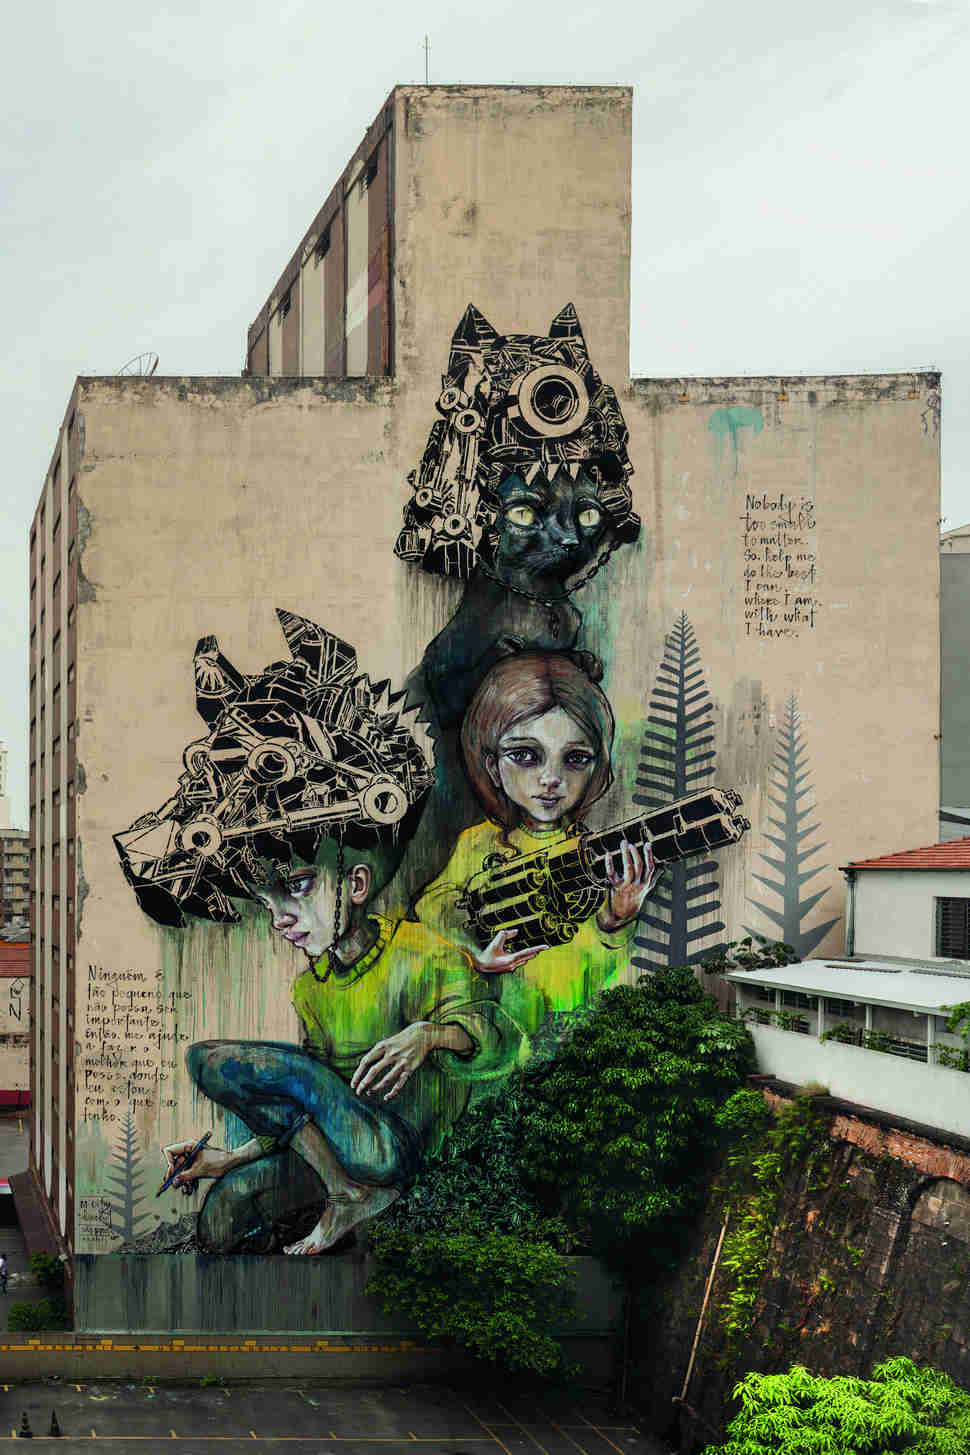 Incredible Street Murals Around the World You Have to See